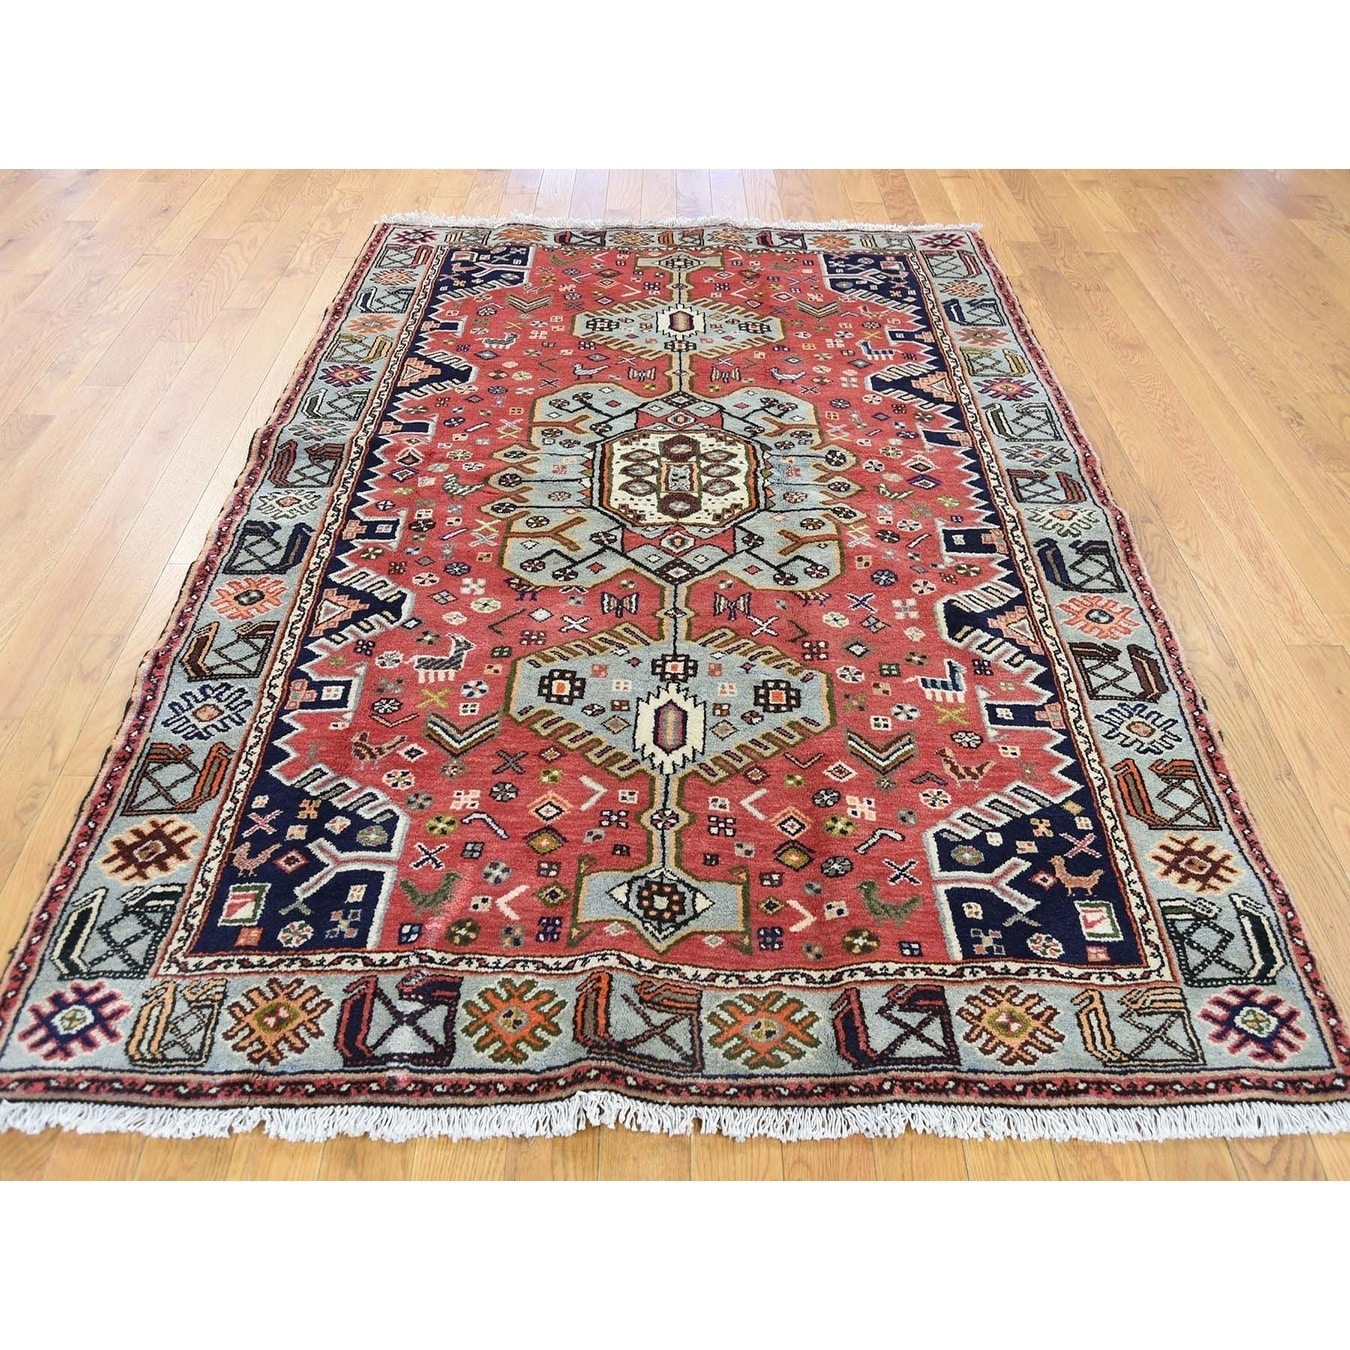 Hand Knotted Red Persian with Wool Oriental Rug - 46 x 67